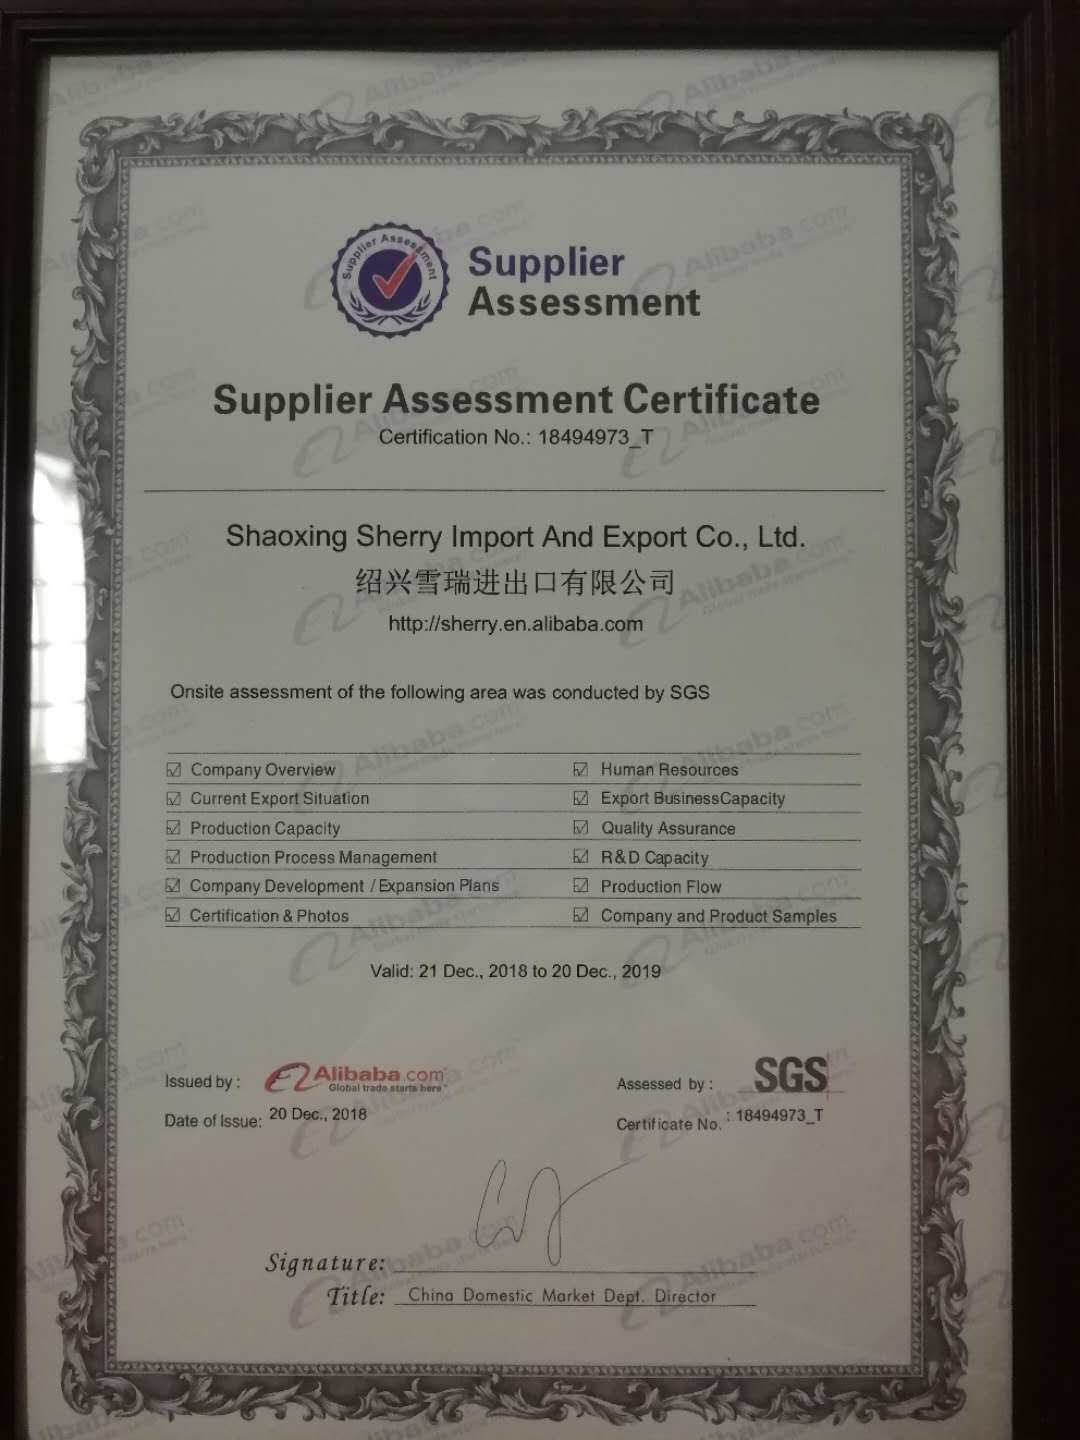 Company Overview - Shaoxing Sherry Import And Export Co , Ltd